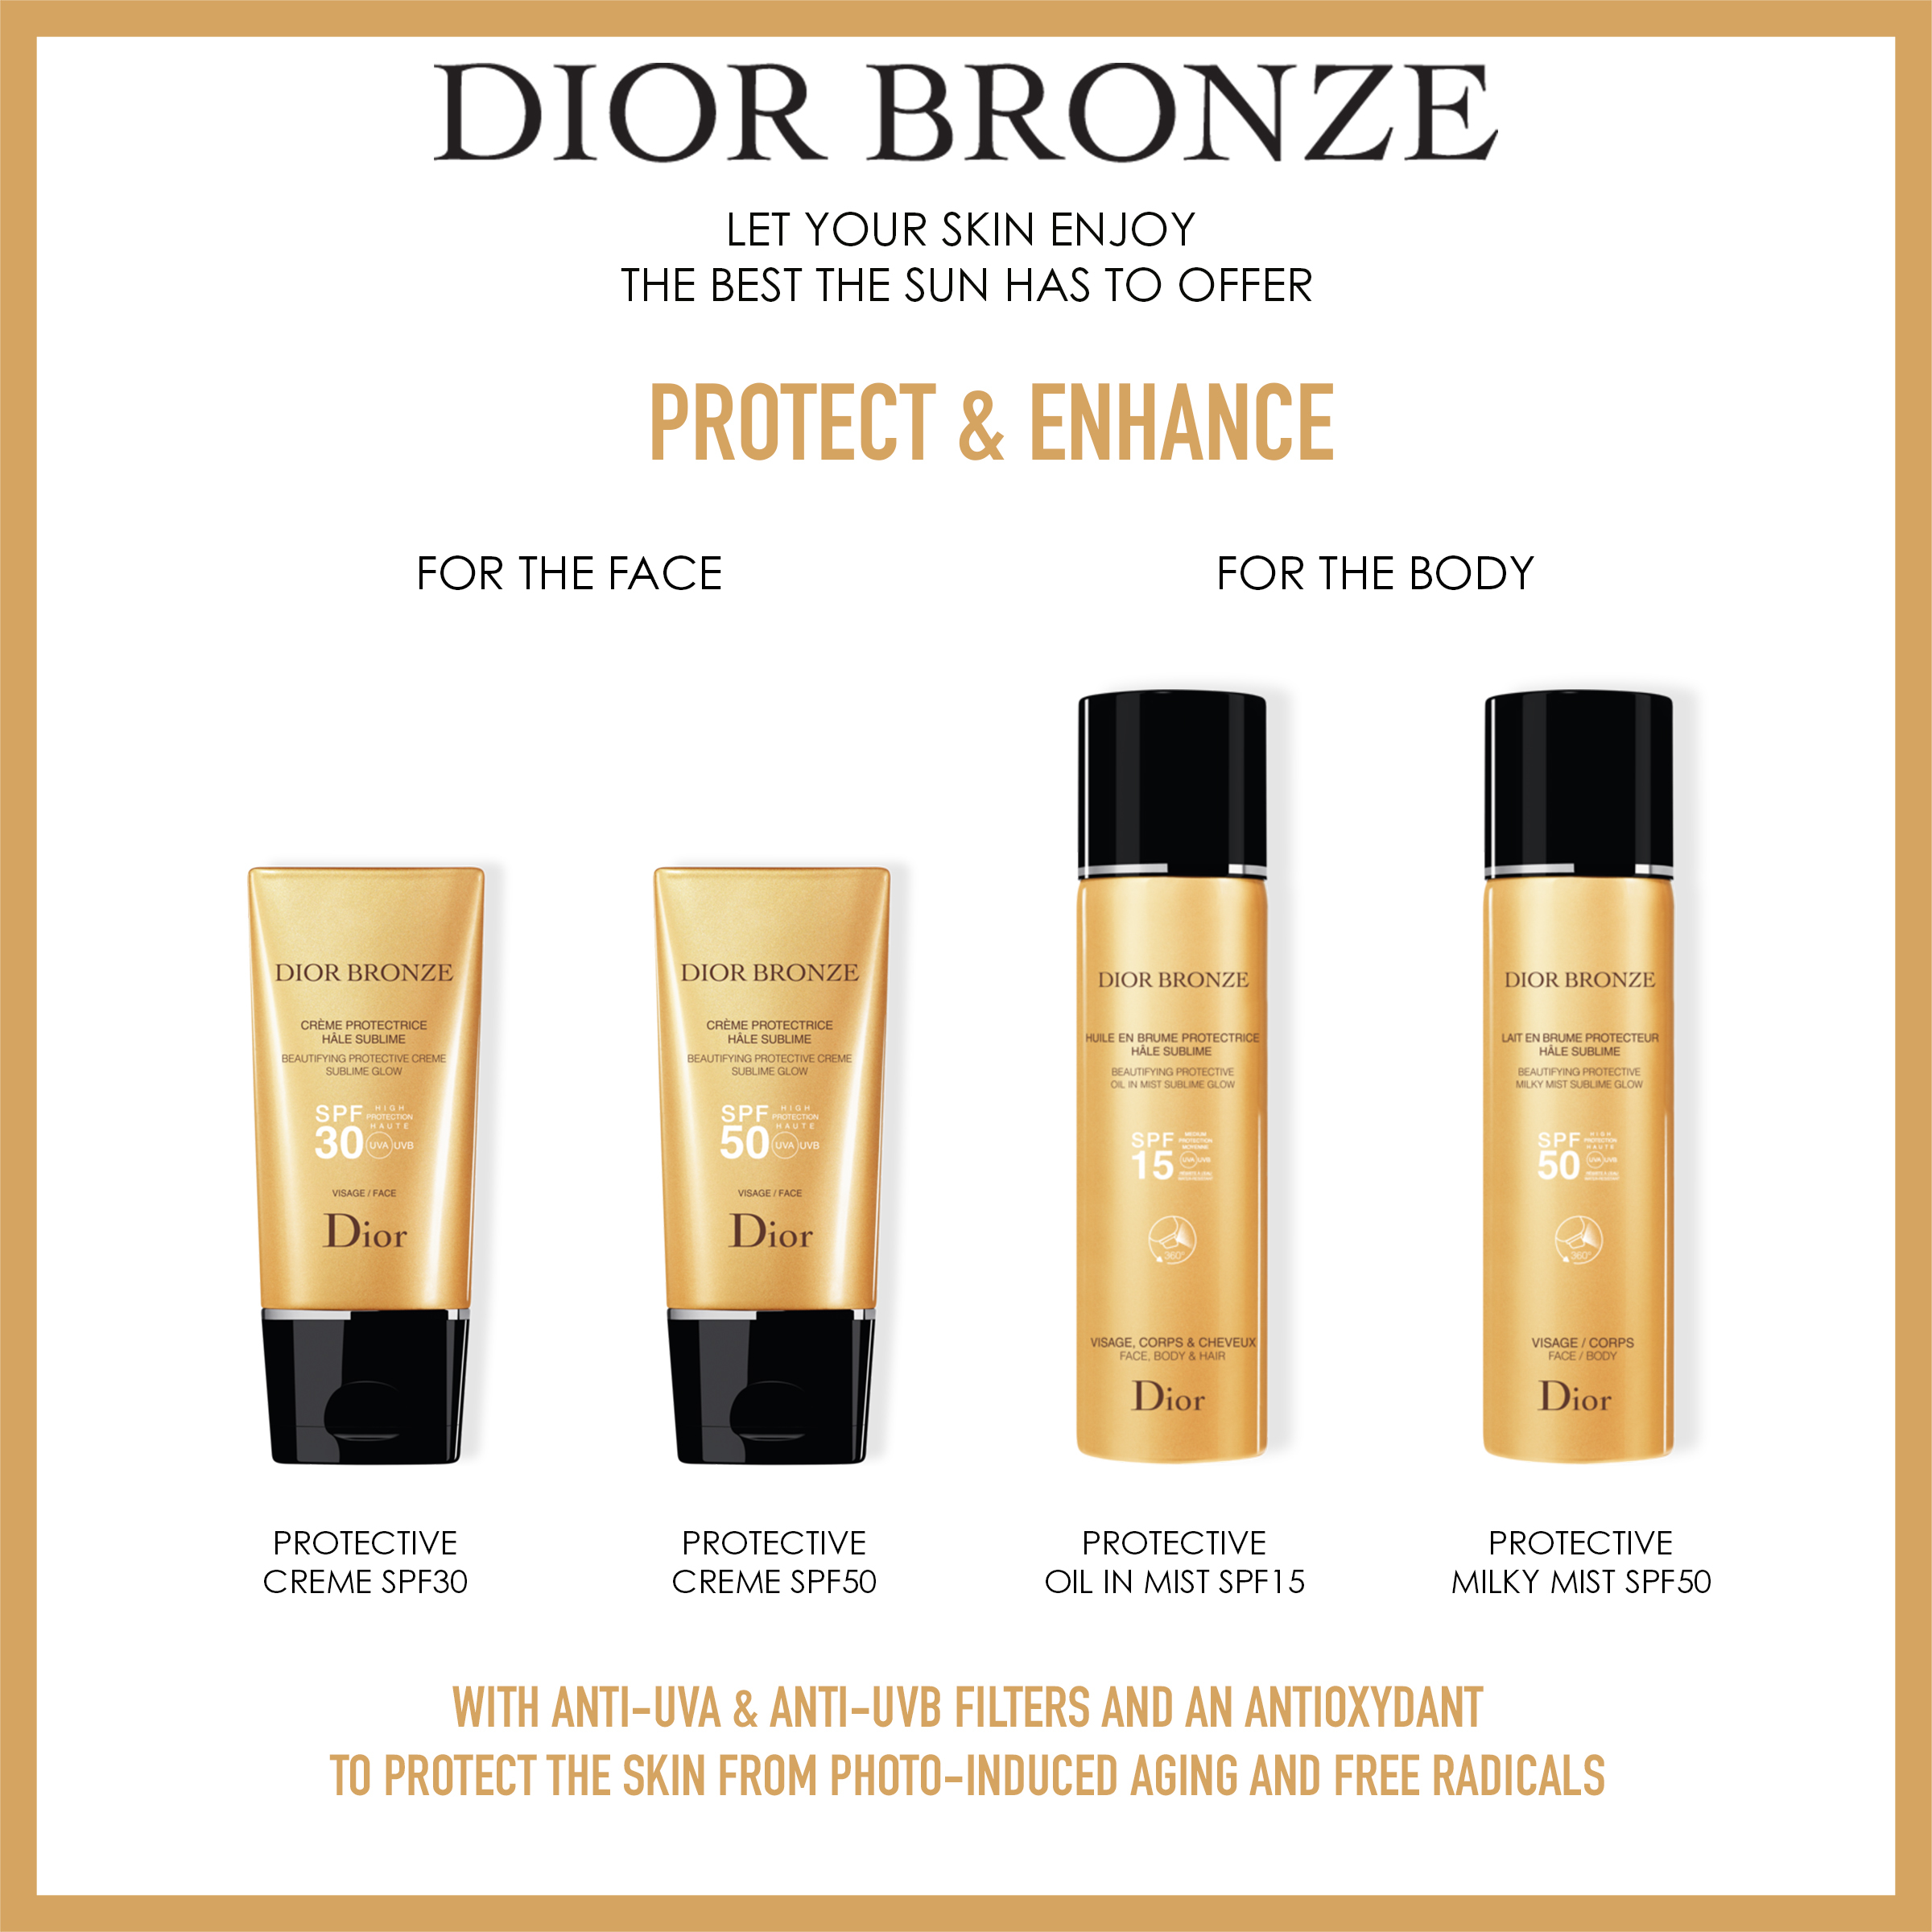 Diorbronze Face Protect Creme SPF30 50 ml